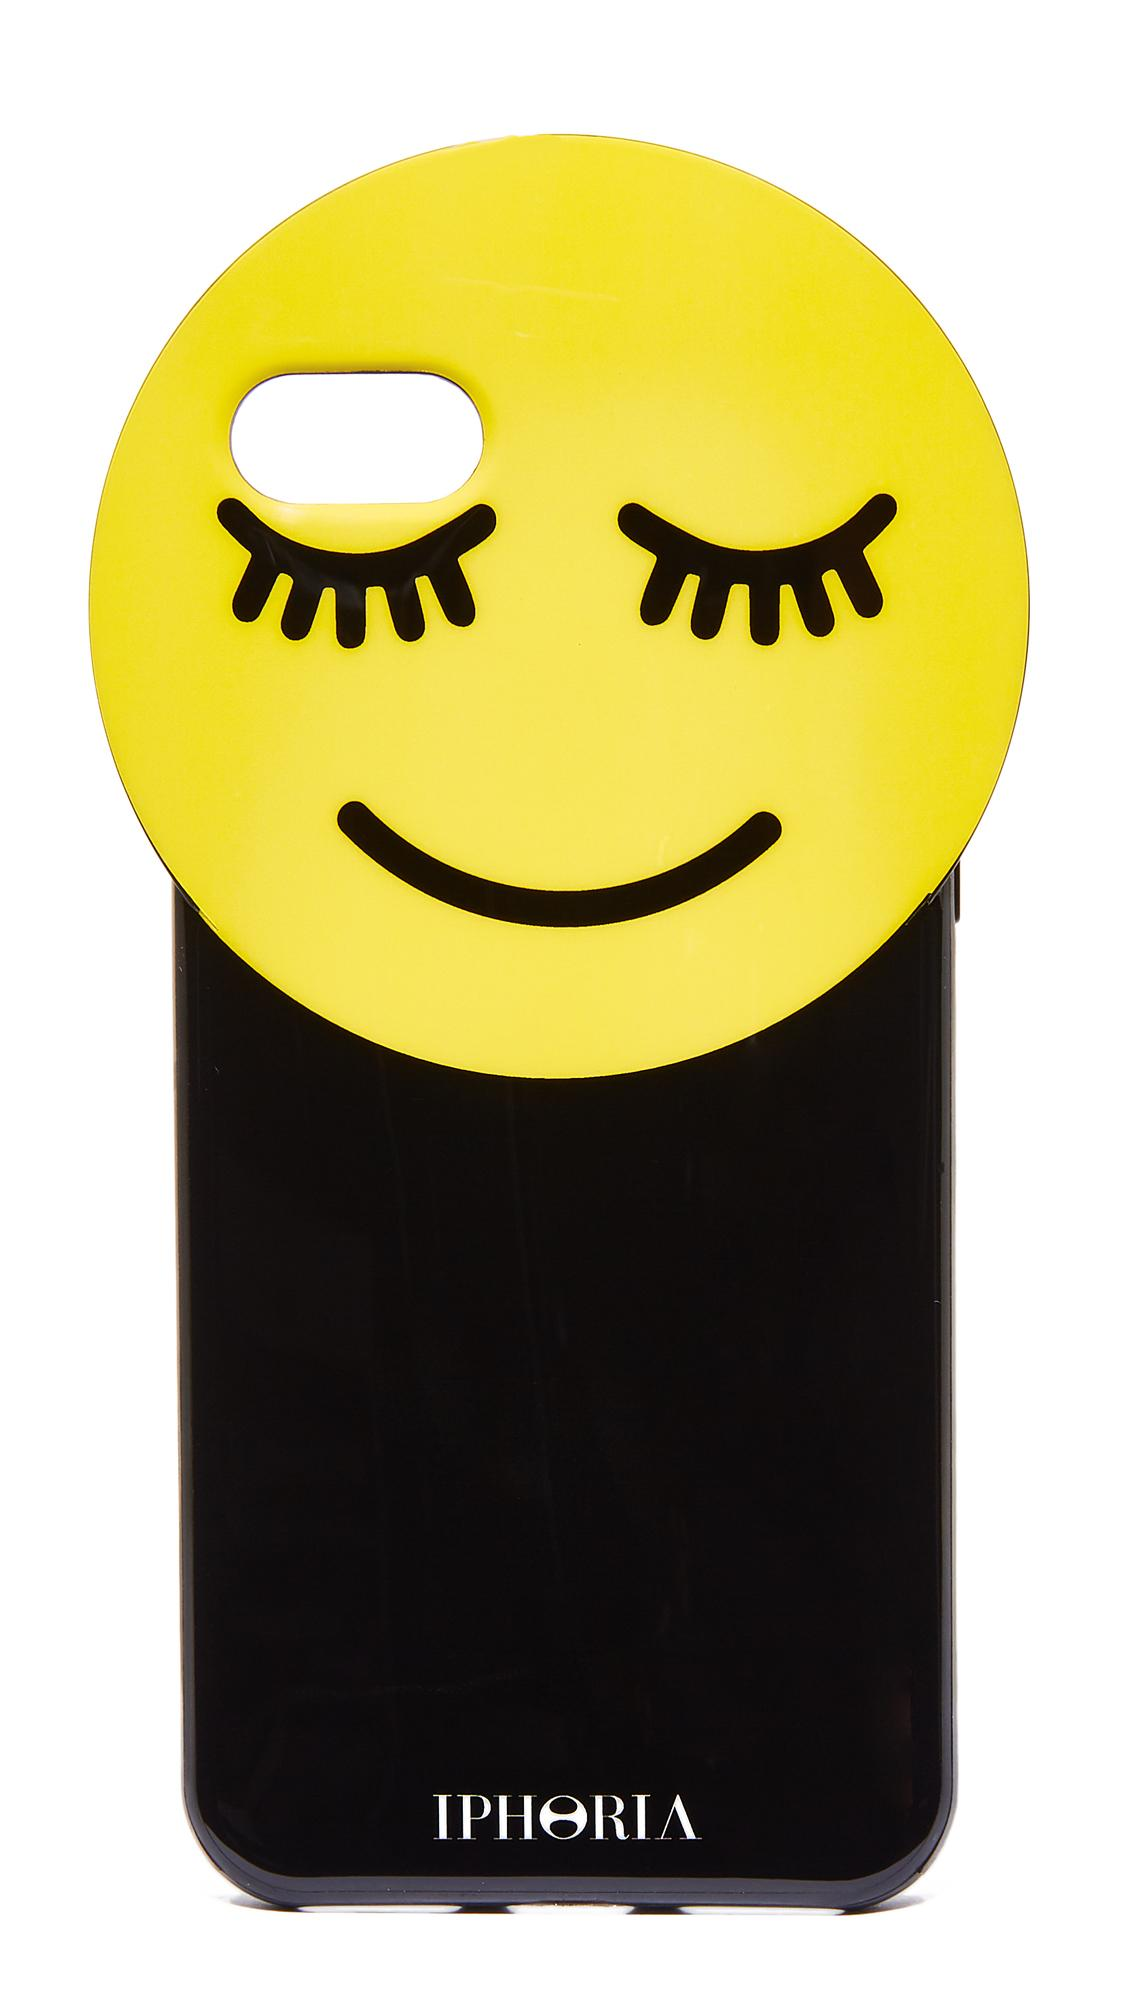 lyst iphoria smiley iphone 7 case in yellow. Black Bedroom Furniture Sets. Home Design Ideas